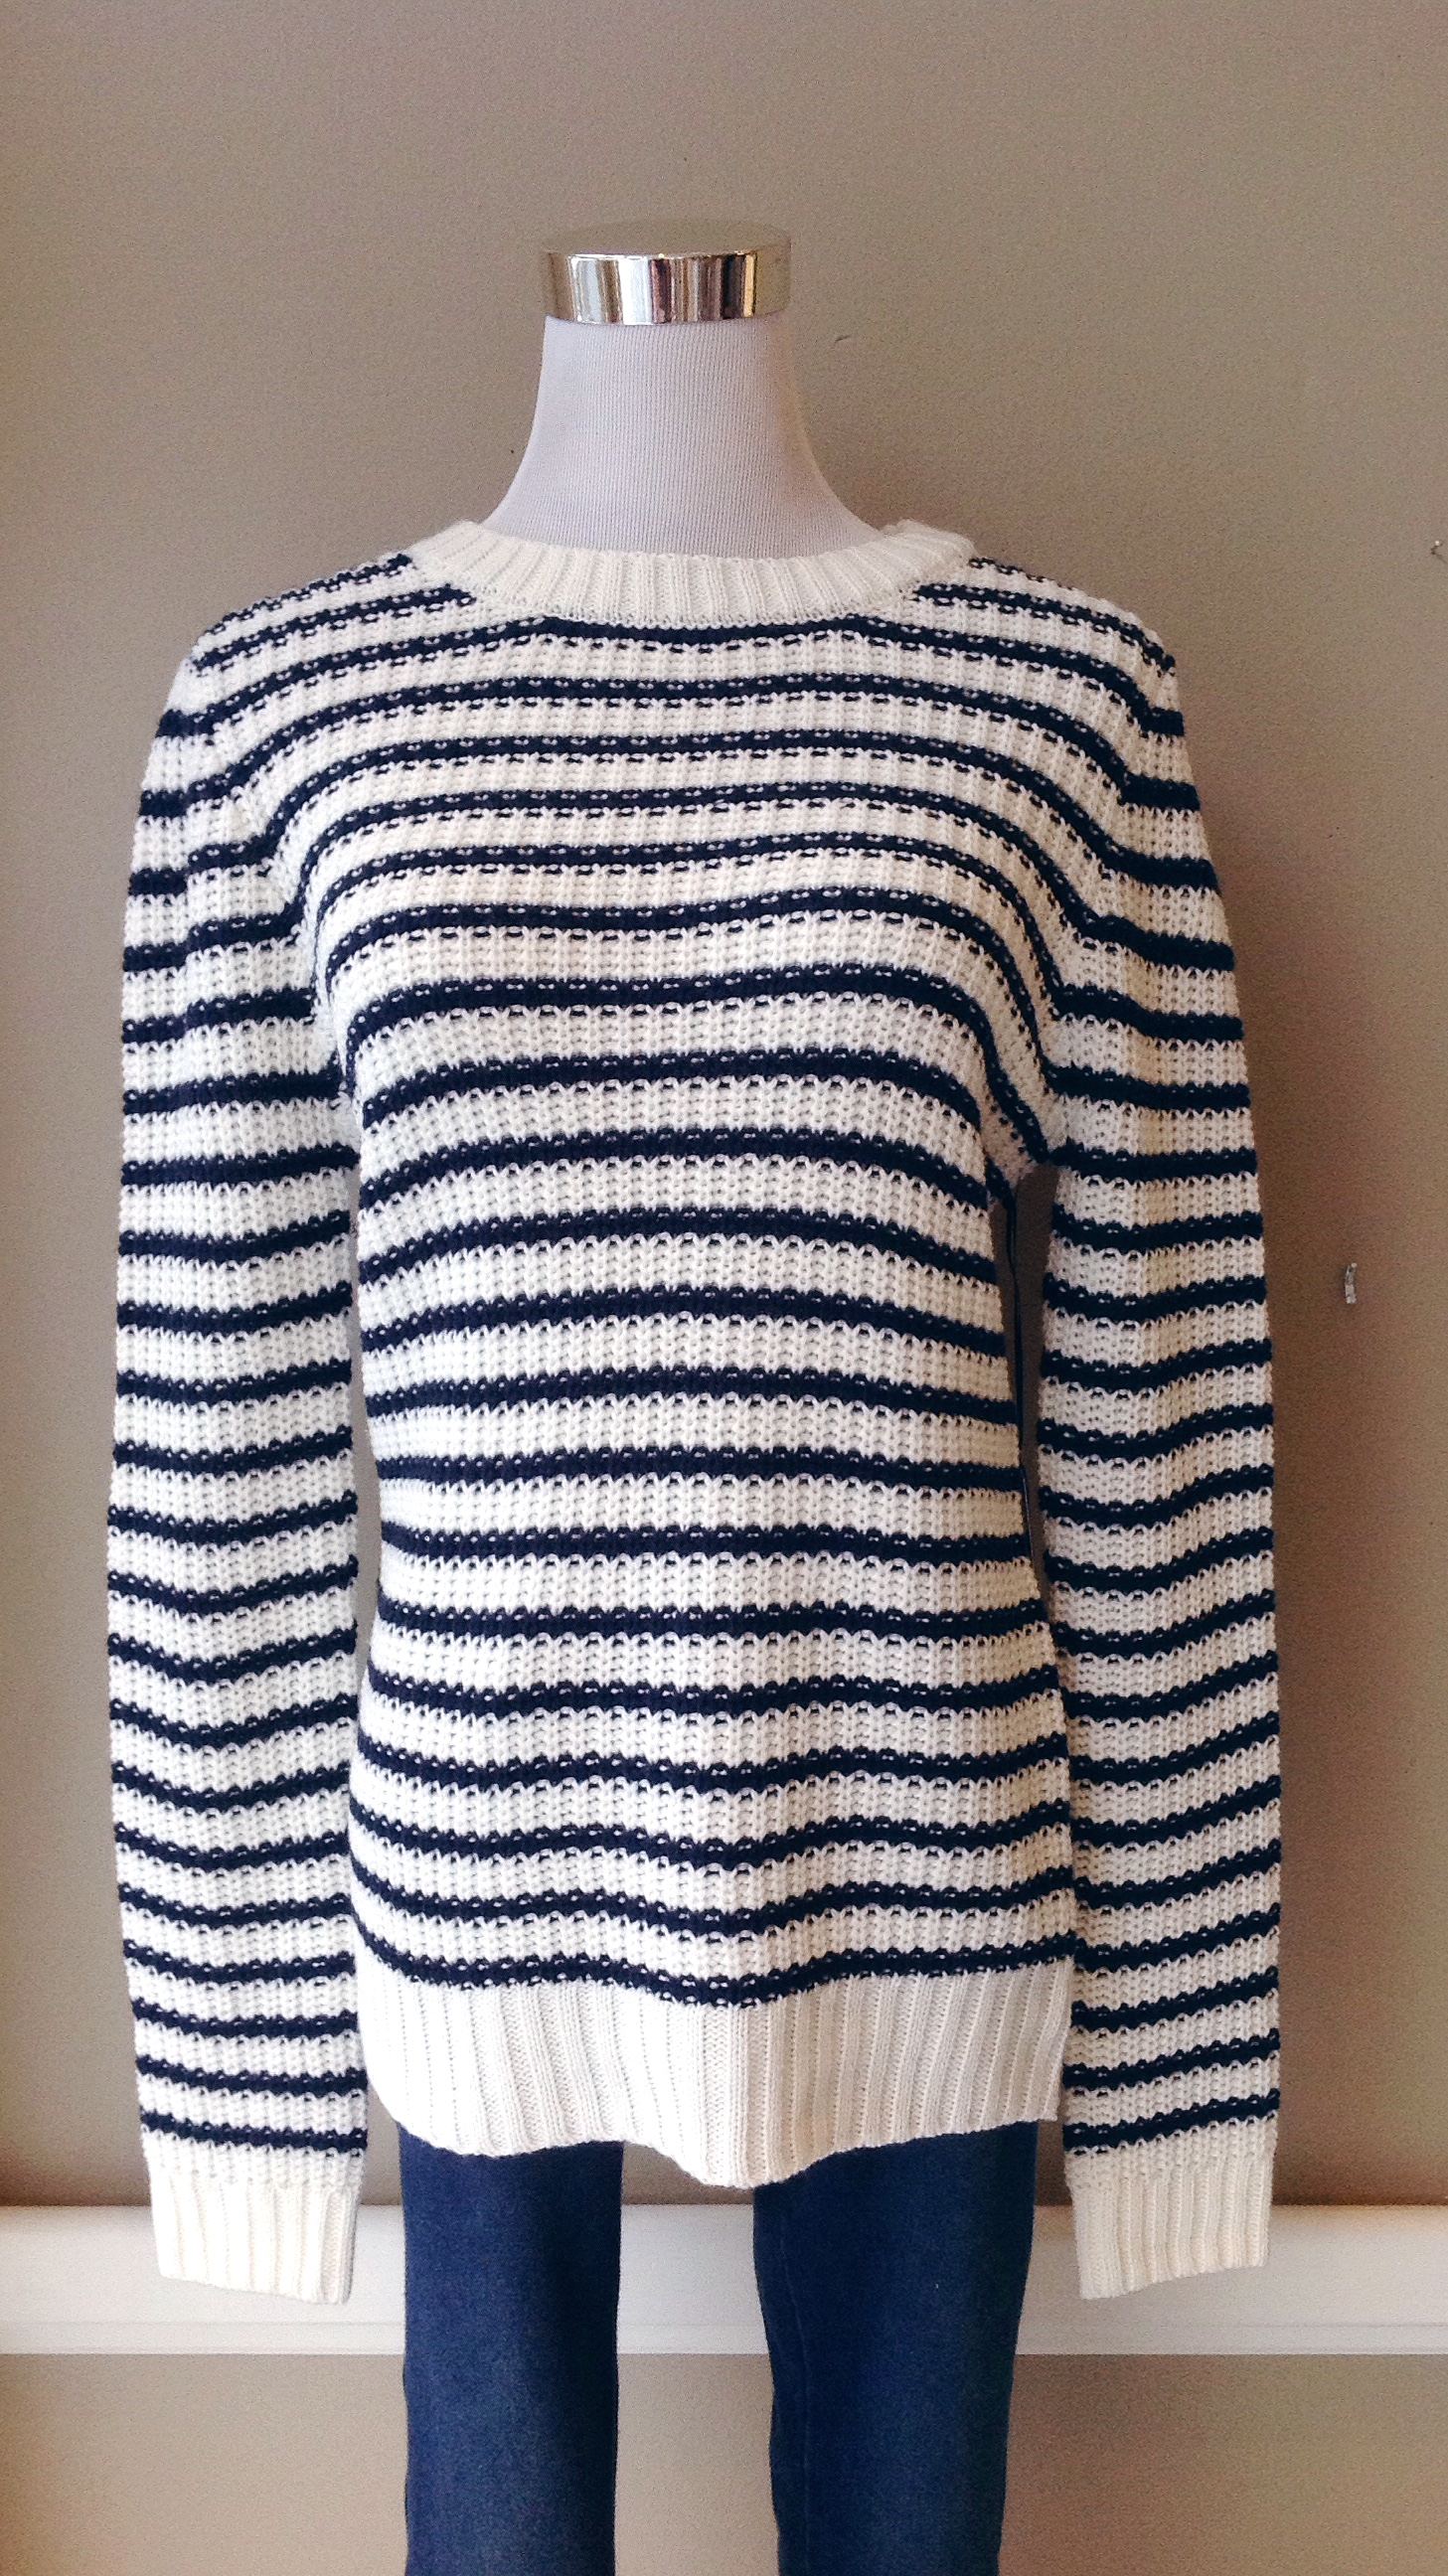 Chunky knit sweater in navy and ivory stripe, $35